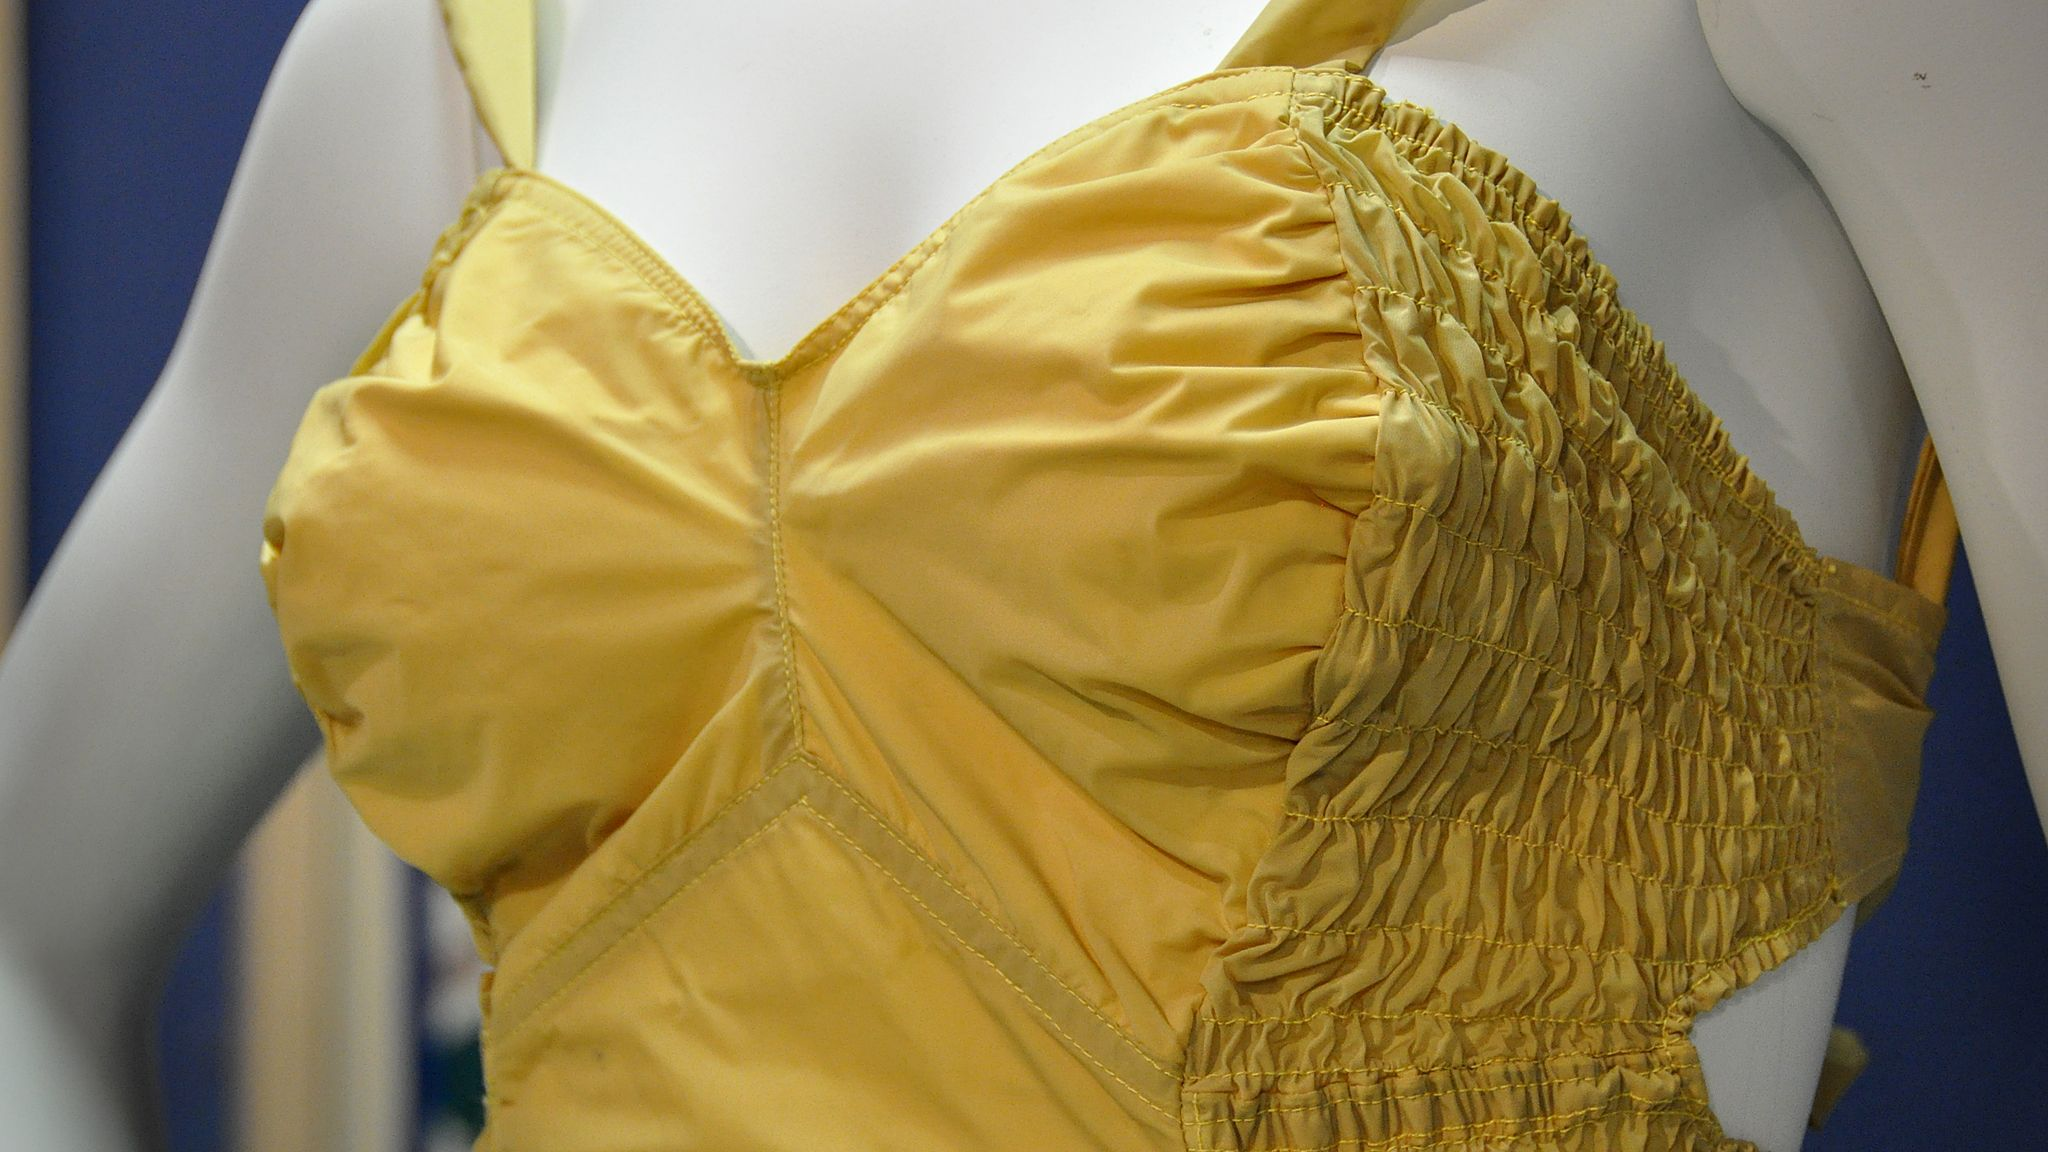 Festival of Britain swimsuit made with nylon, 1951 (detail)